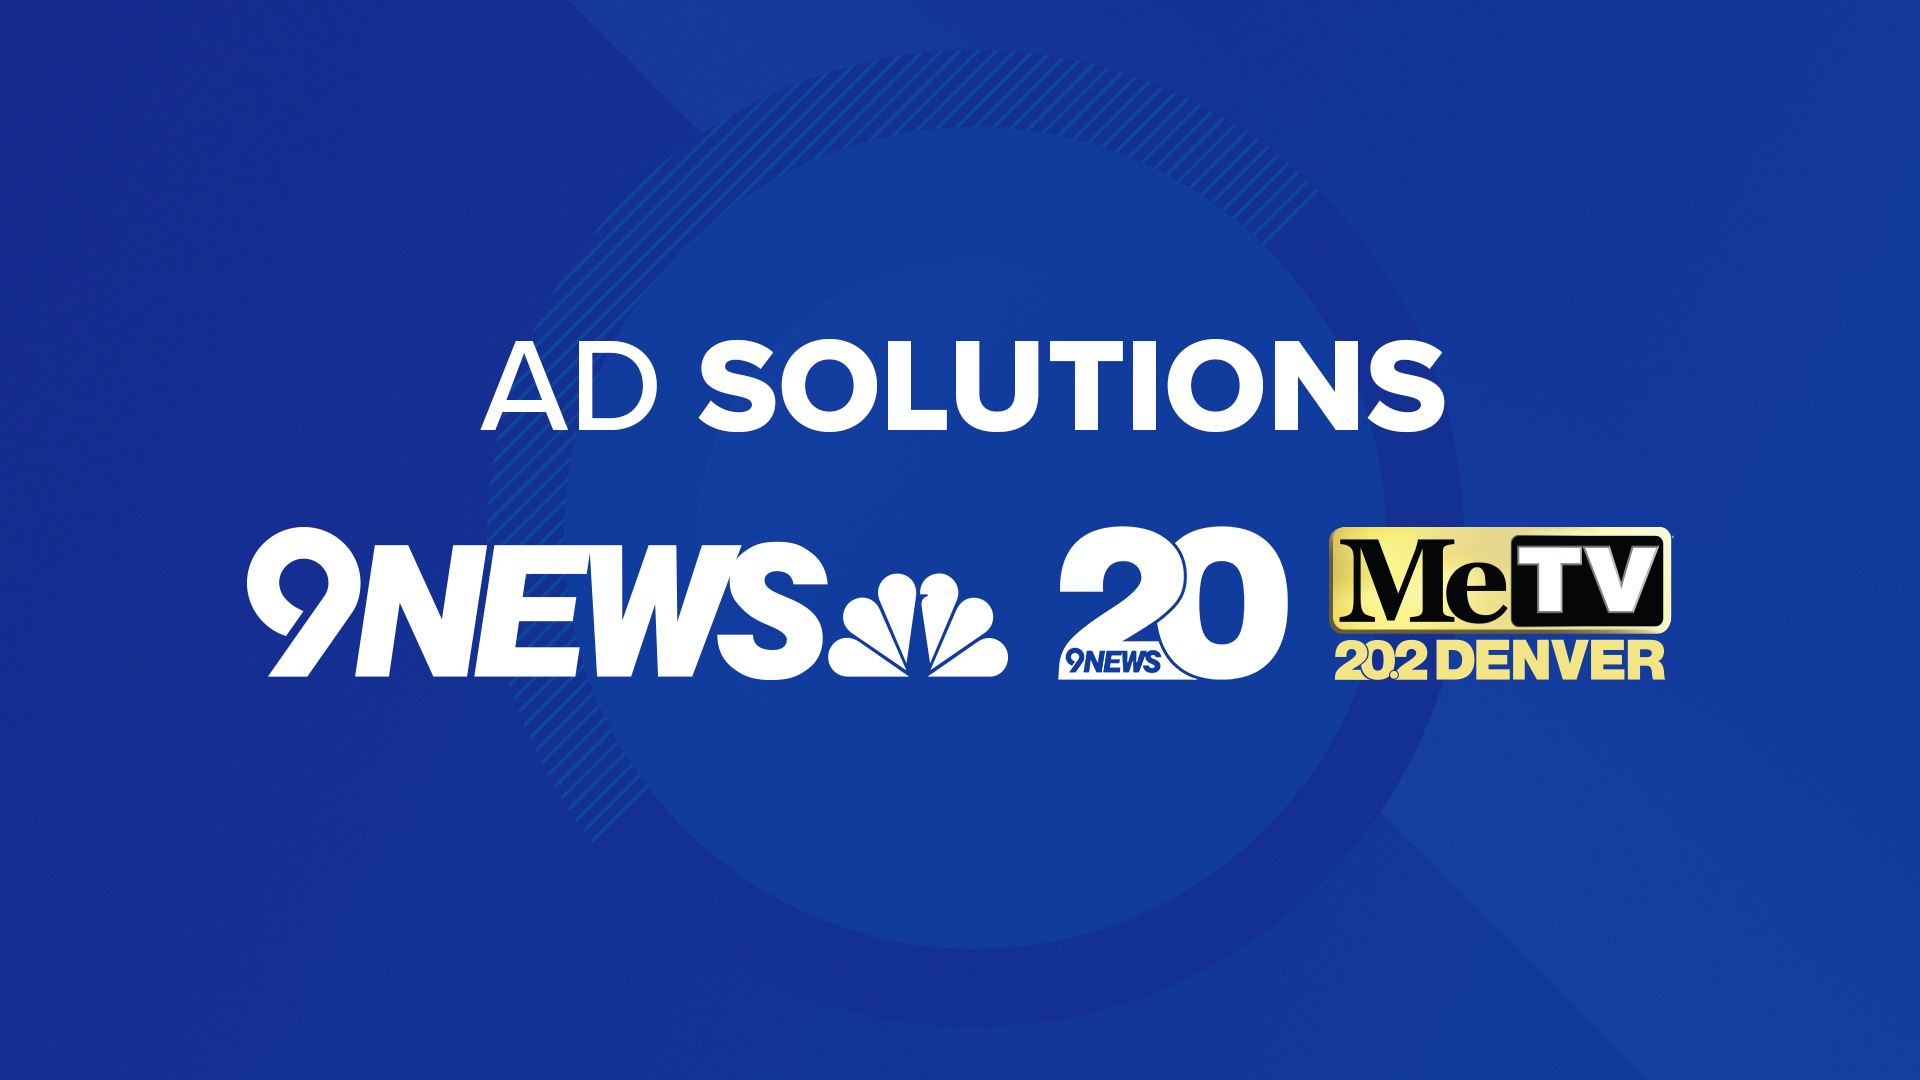 9NEWS Advertising Solutions